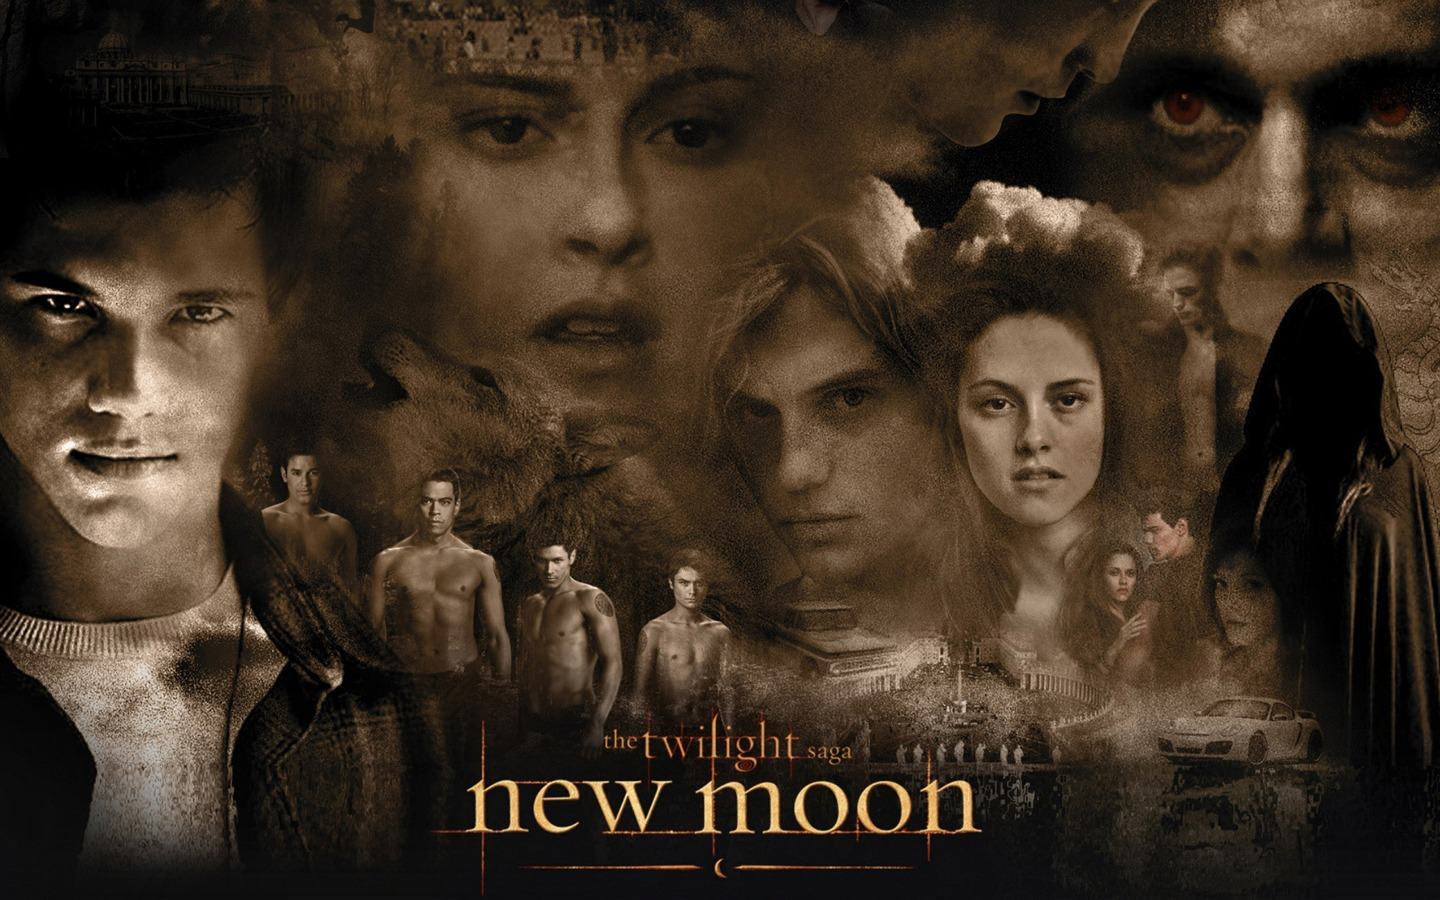 twilight saga new moon 2009 movie download in hindi